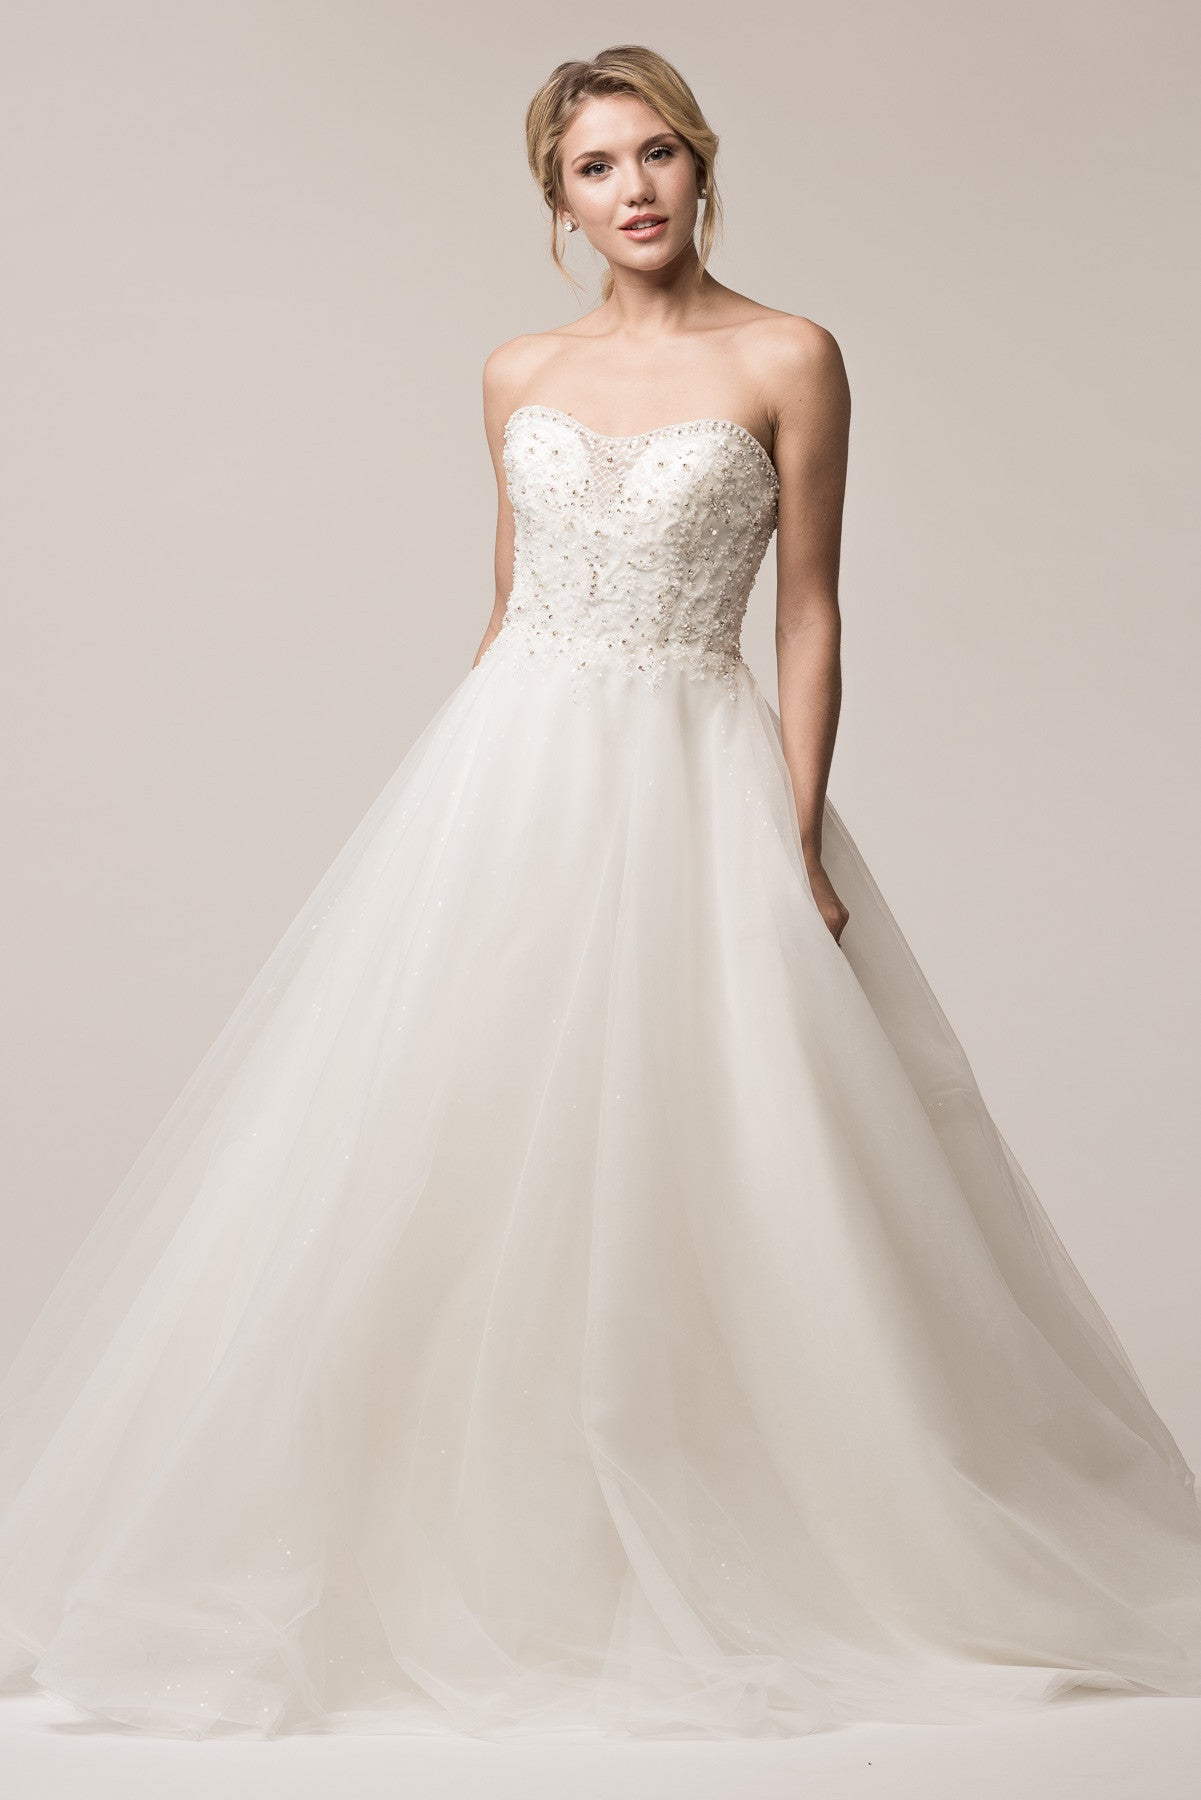 Best Selling Wedding Dresses & Bridal Gowns – BICICI & COTY